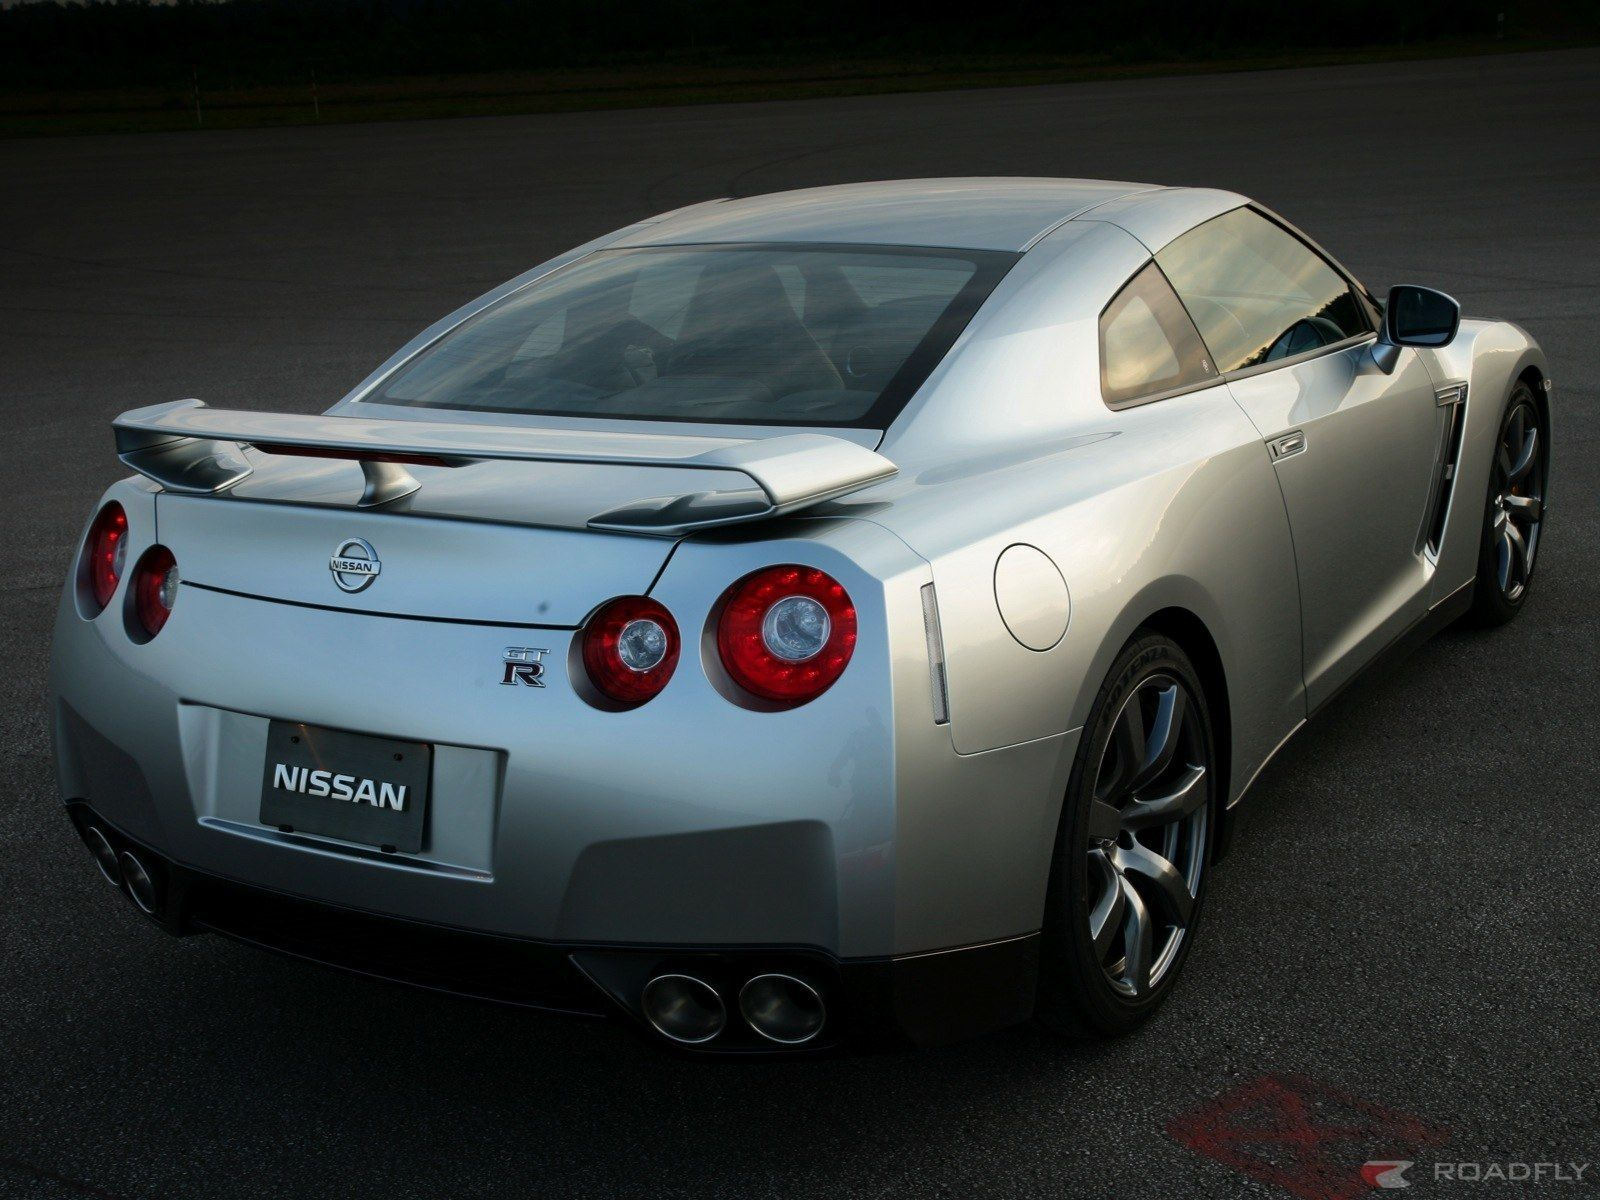 Sport Cars Concept Cars Cars Gallery Nissan Sport Cars For Nissan Sports Car List 30520